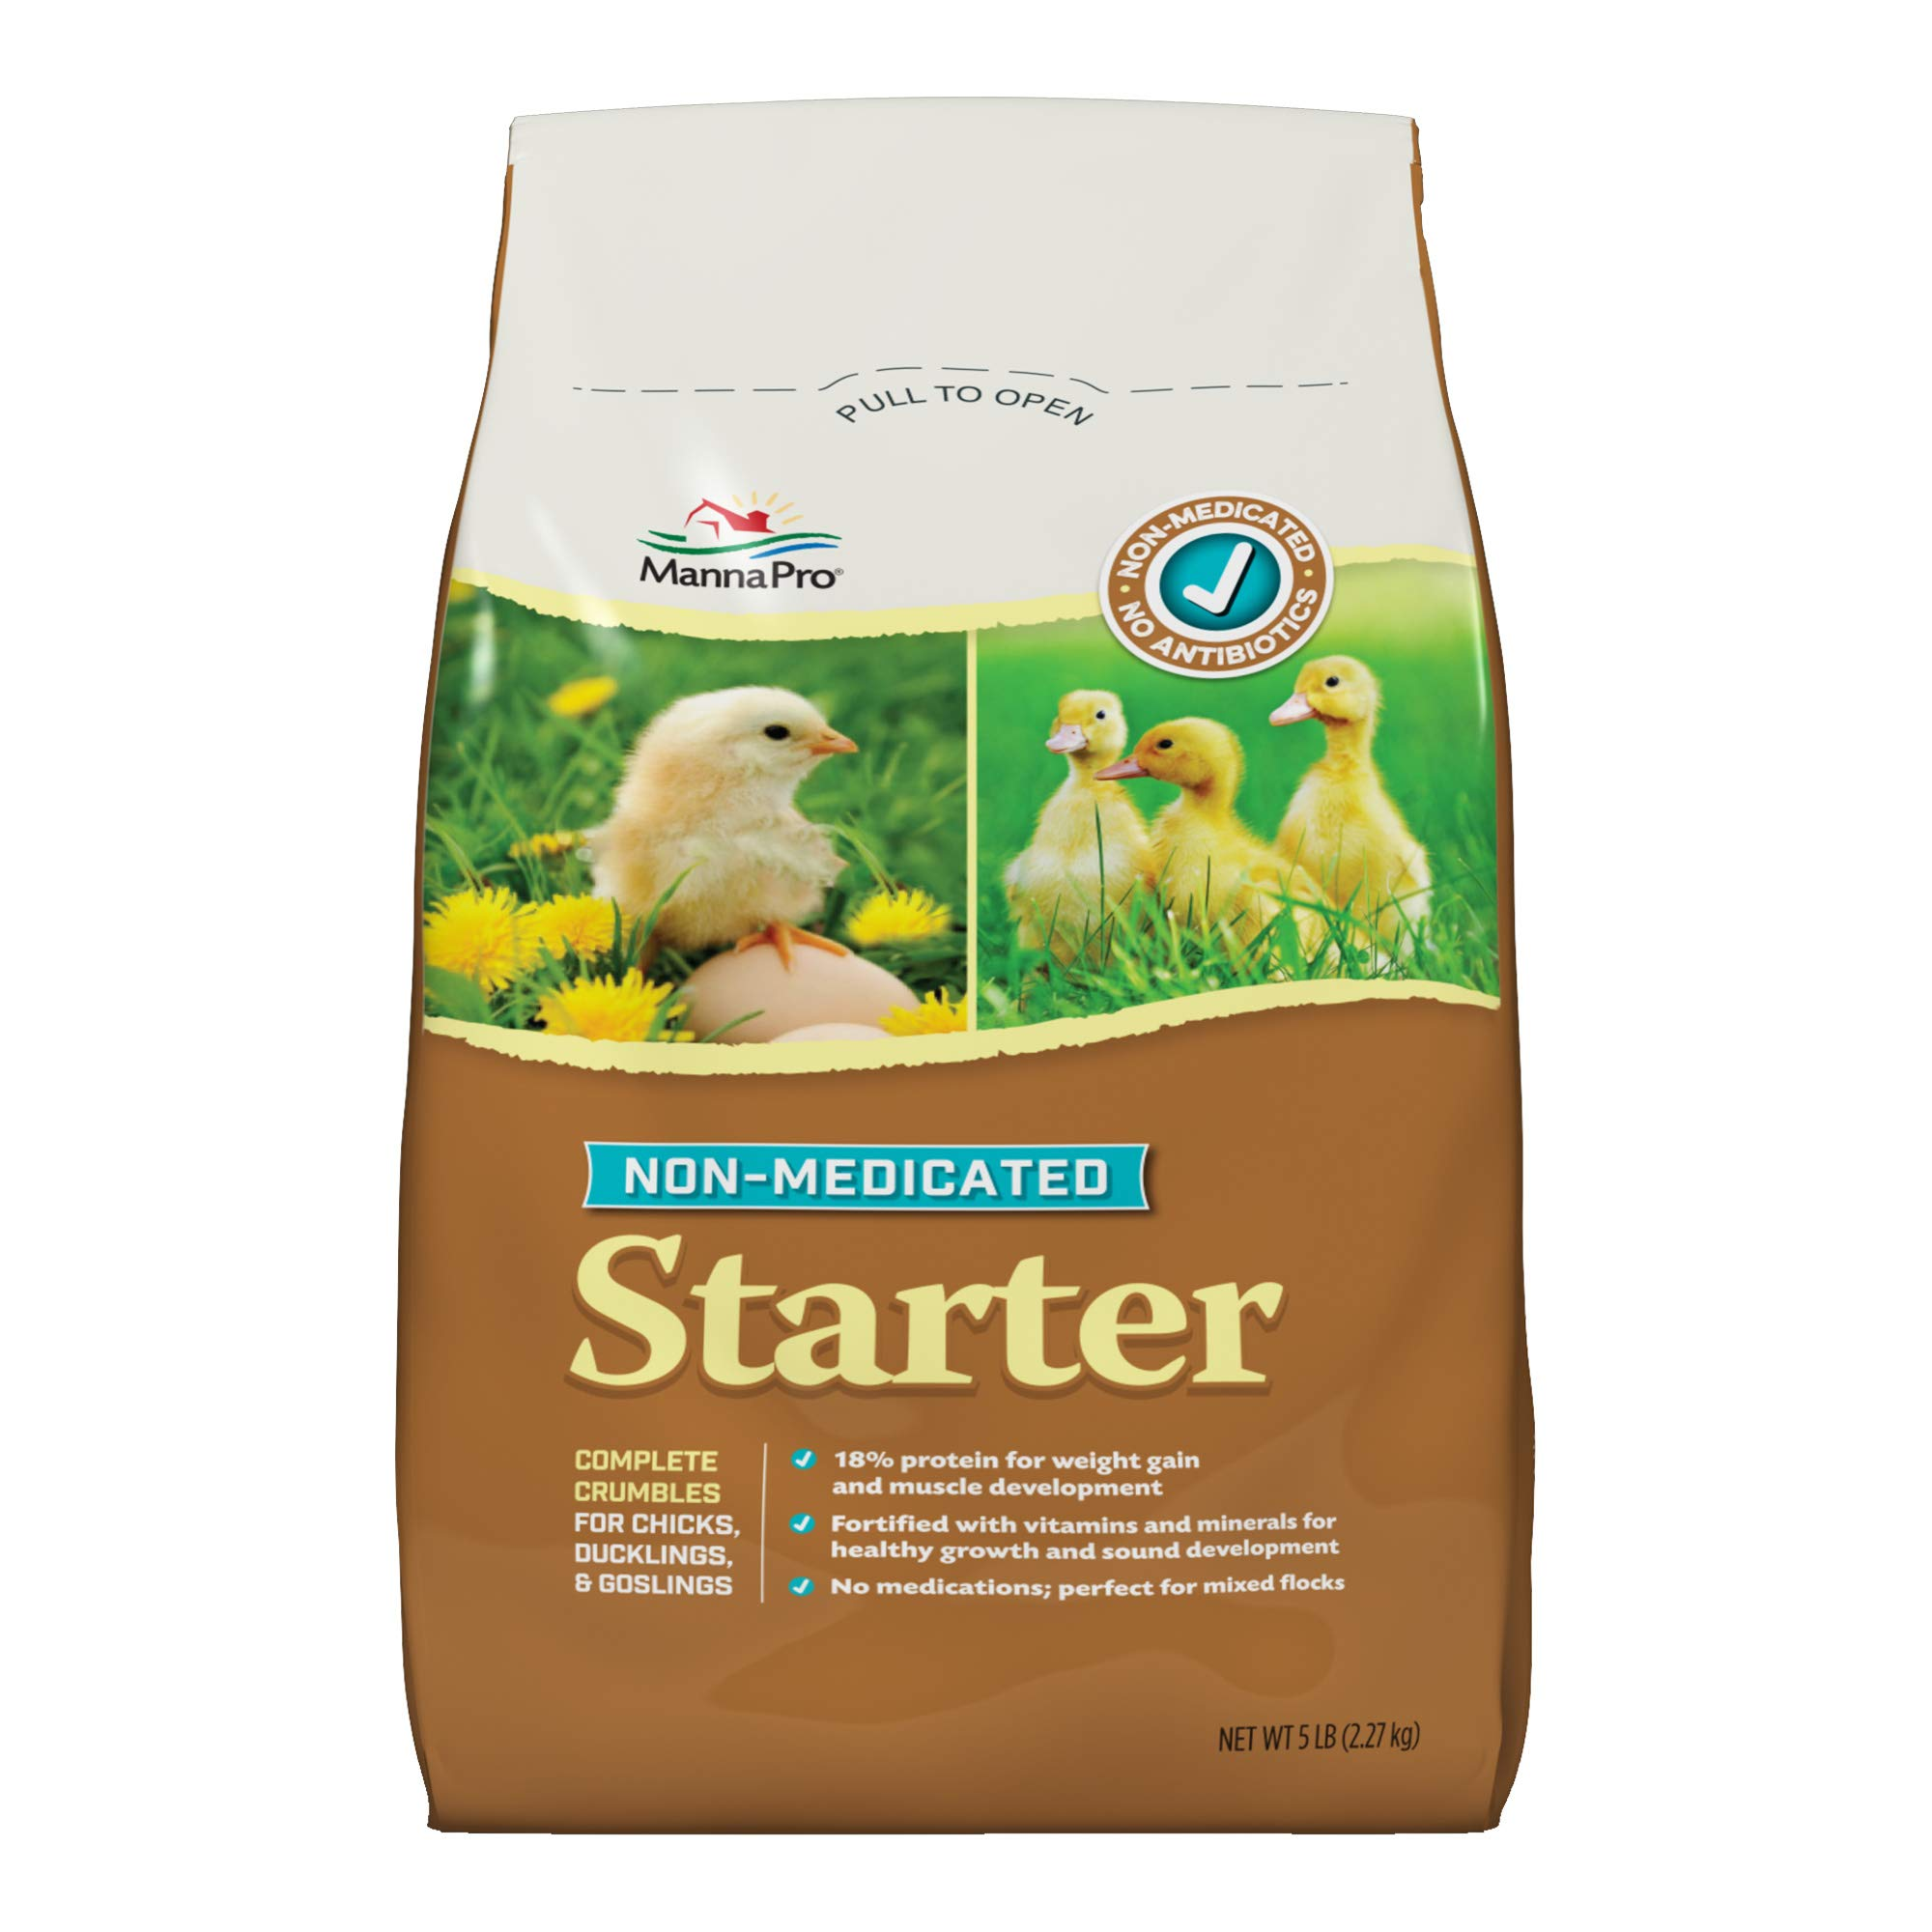 Manna Pro Chick Starter Feed, 5 Pound, Non‑Medicated, for Chicks Ducklings and Goslings by Manna Pro